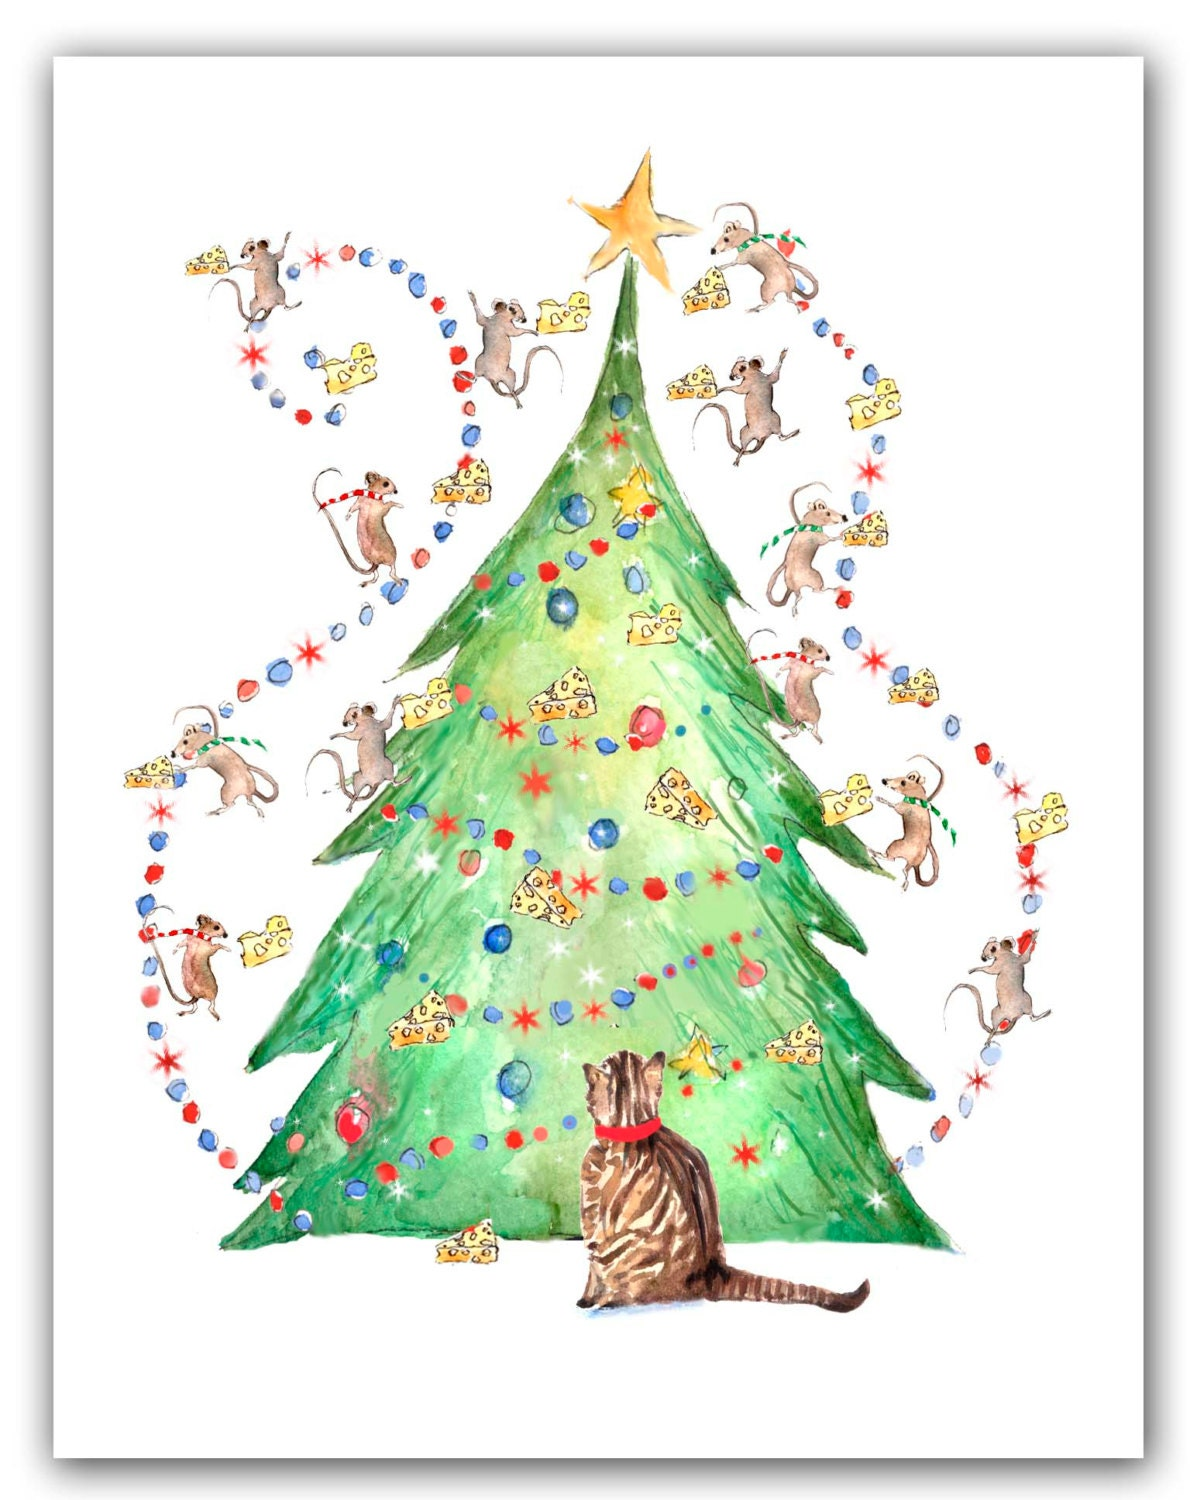 Cat with mice tree Christmas cards. 10 cat holiday cards